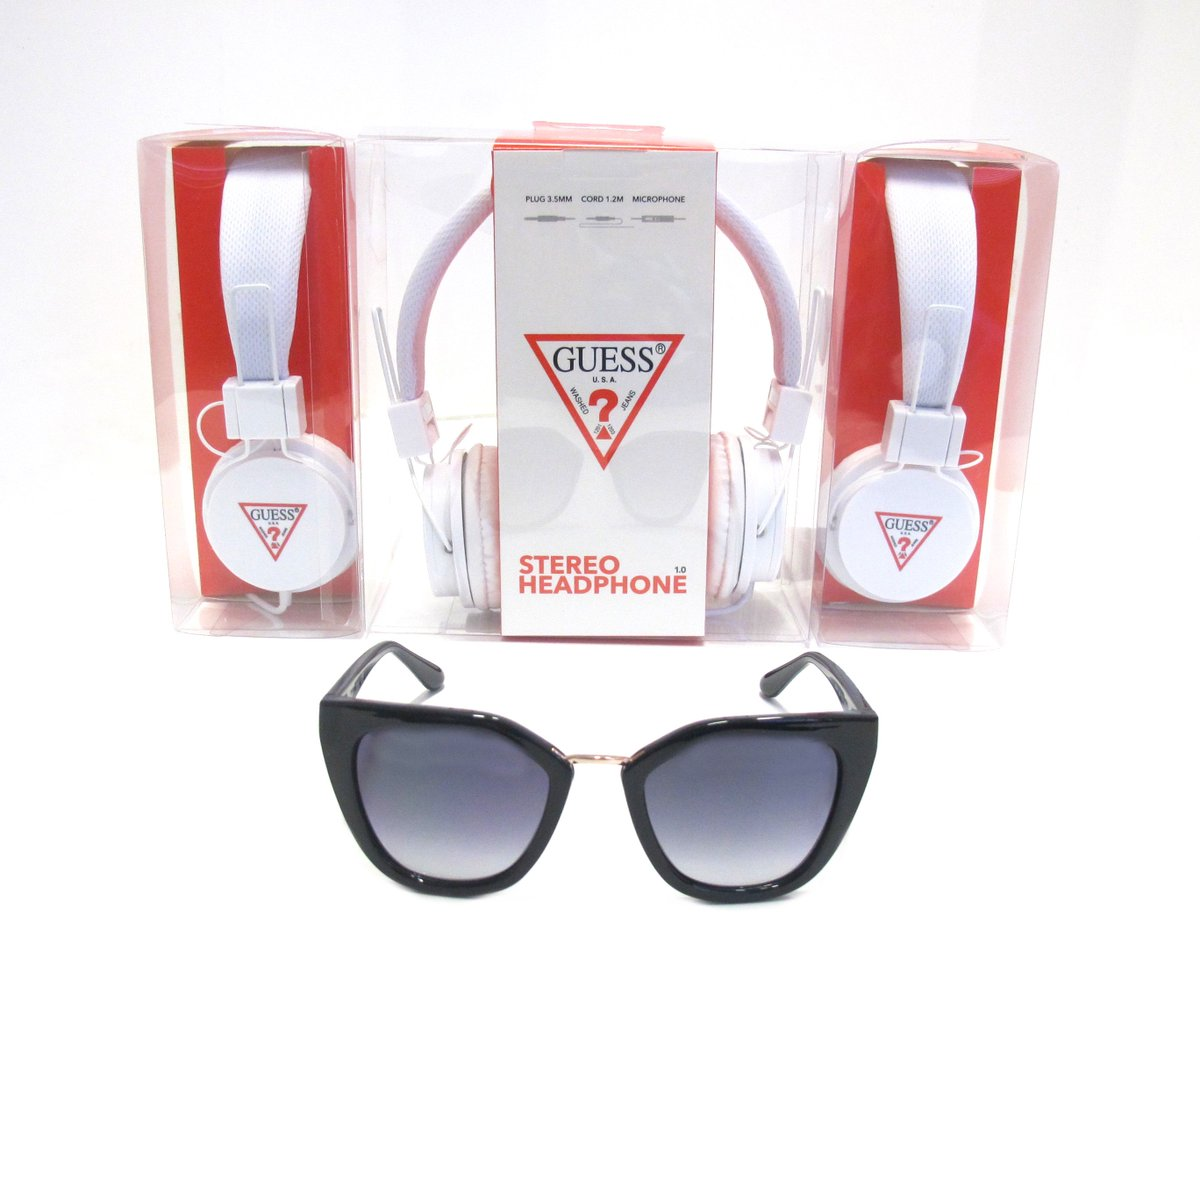 eb80acc525 ... Plus FREE GUESS Headphones with every pair of GUESS Sunglasses until  27.09.2018